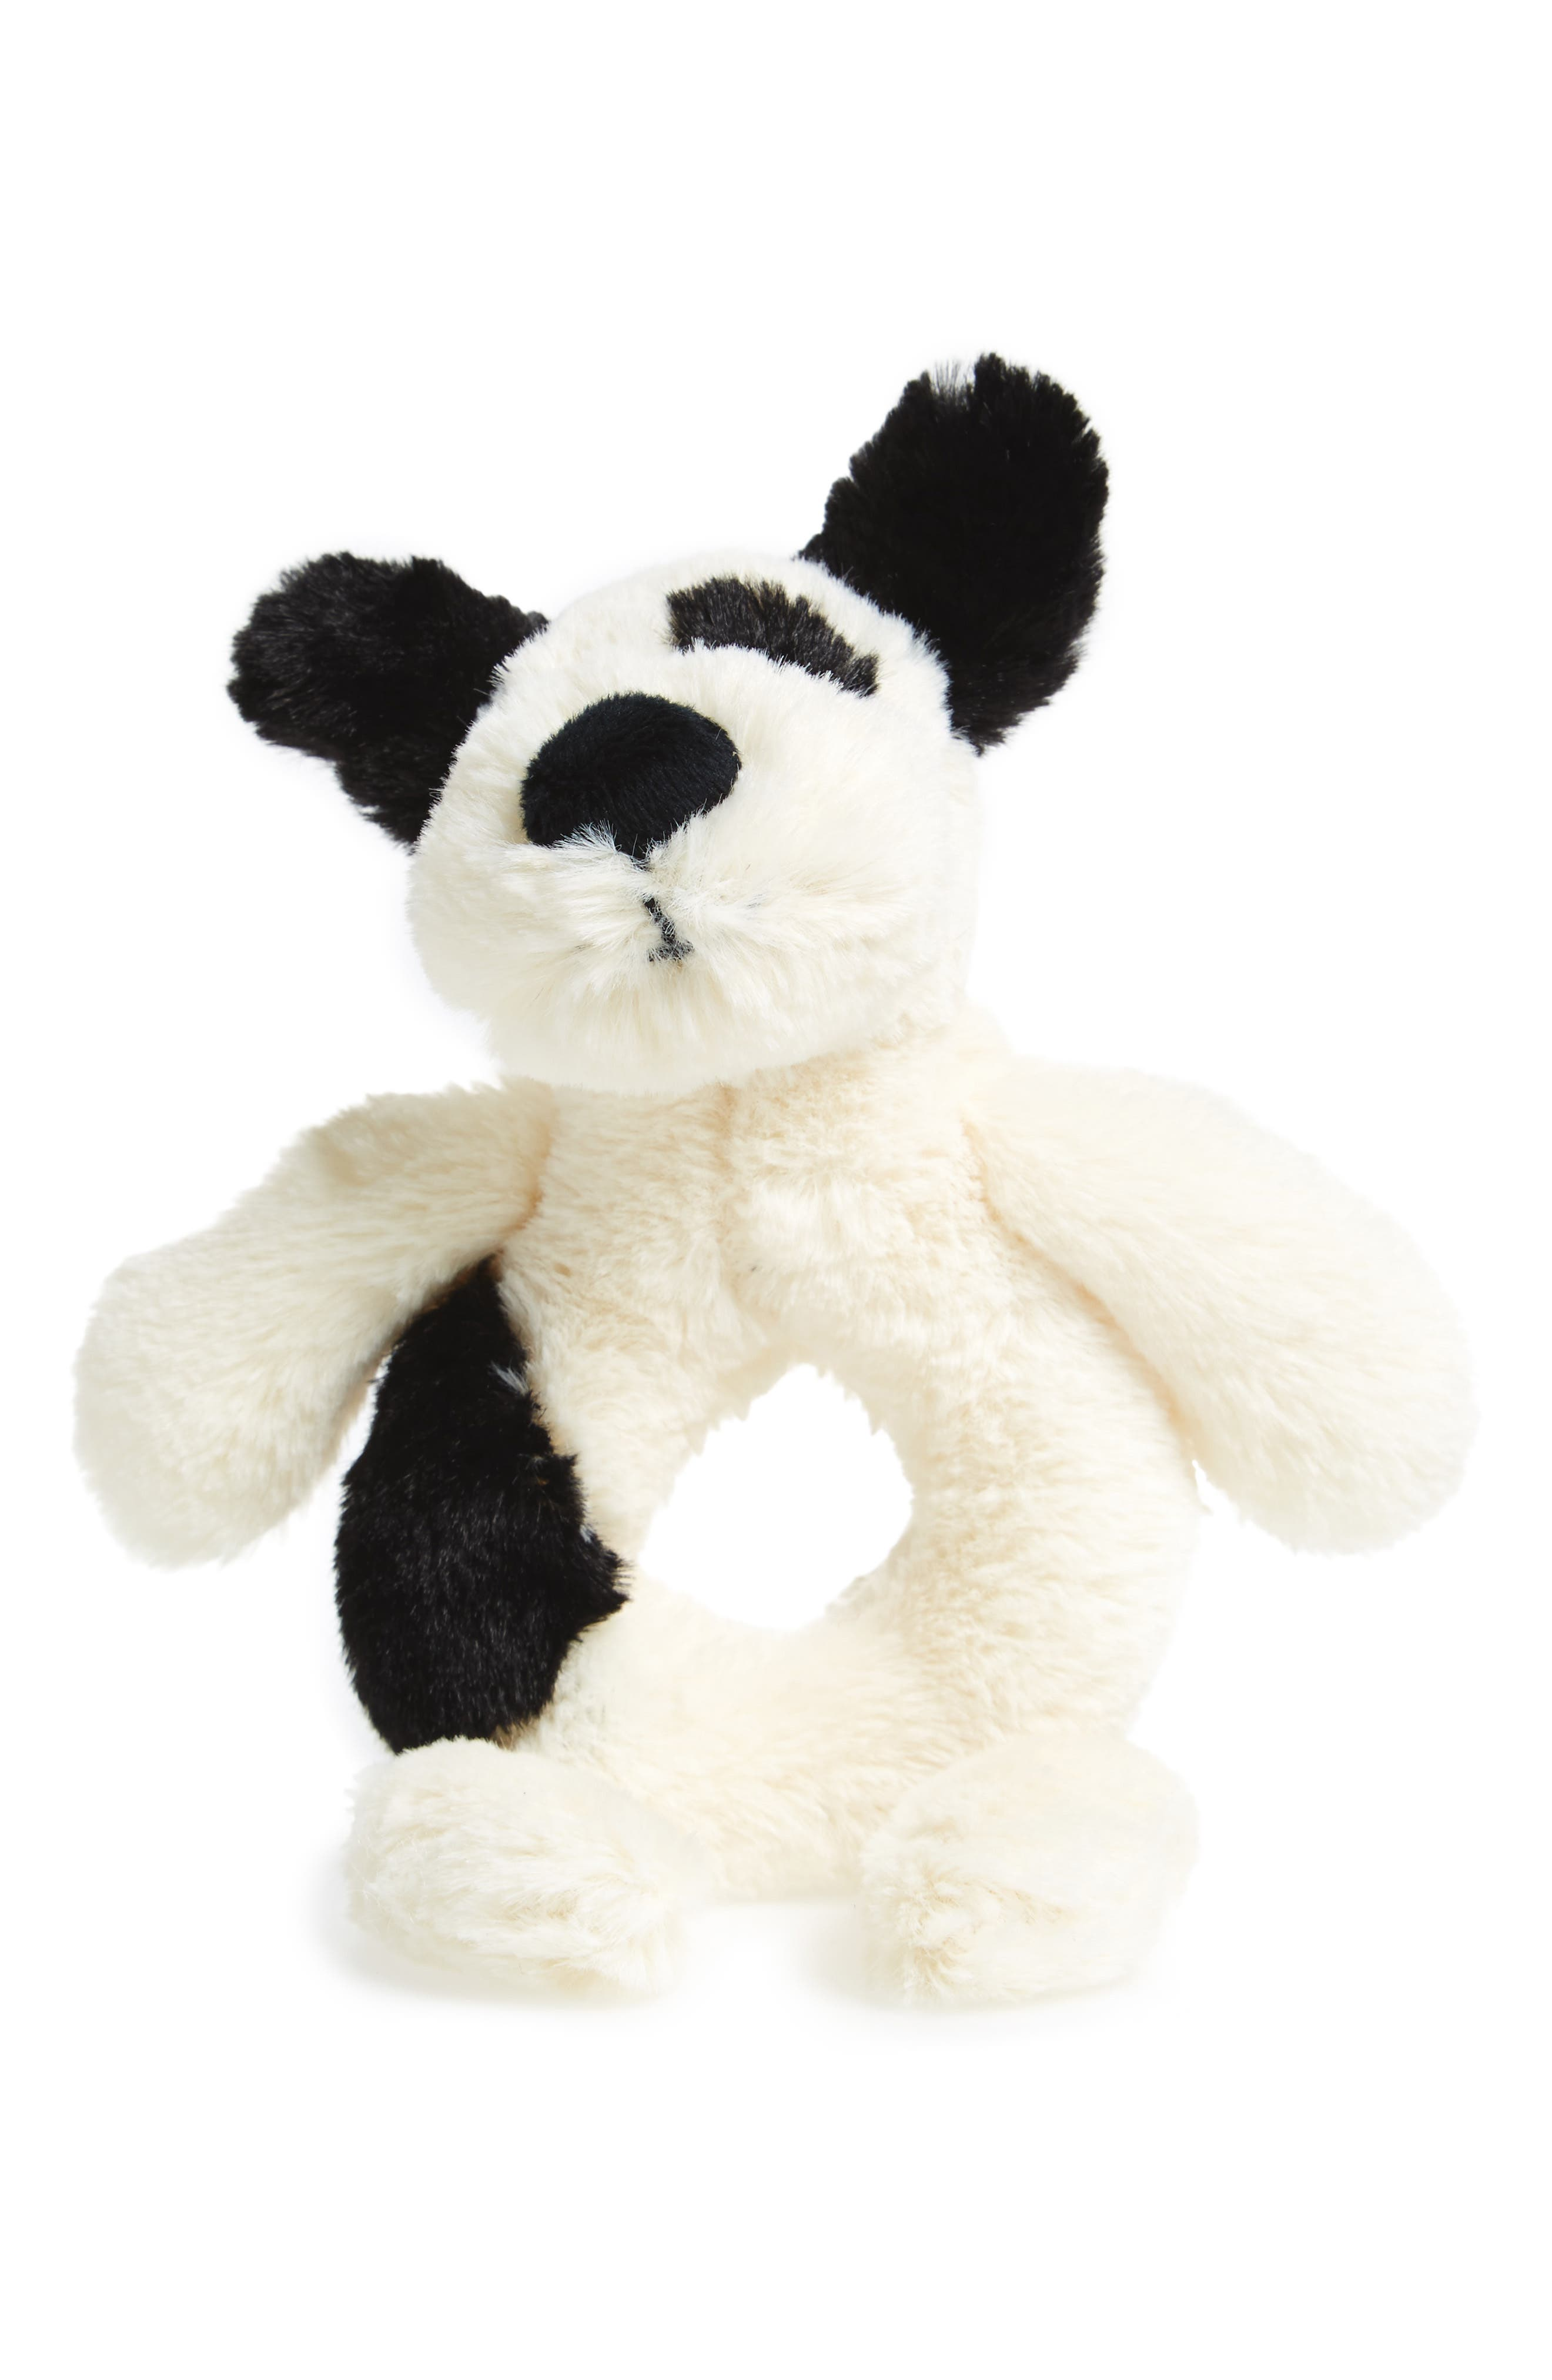 'Dog' Grabber Rattle,                             Main thumbnail 1, color,                             Cream/ Black